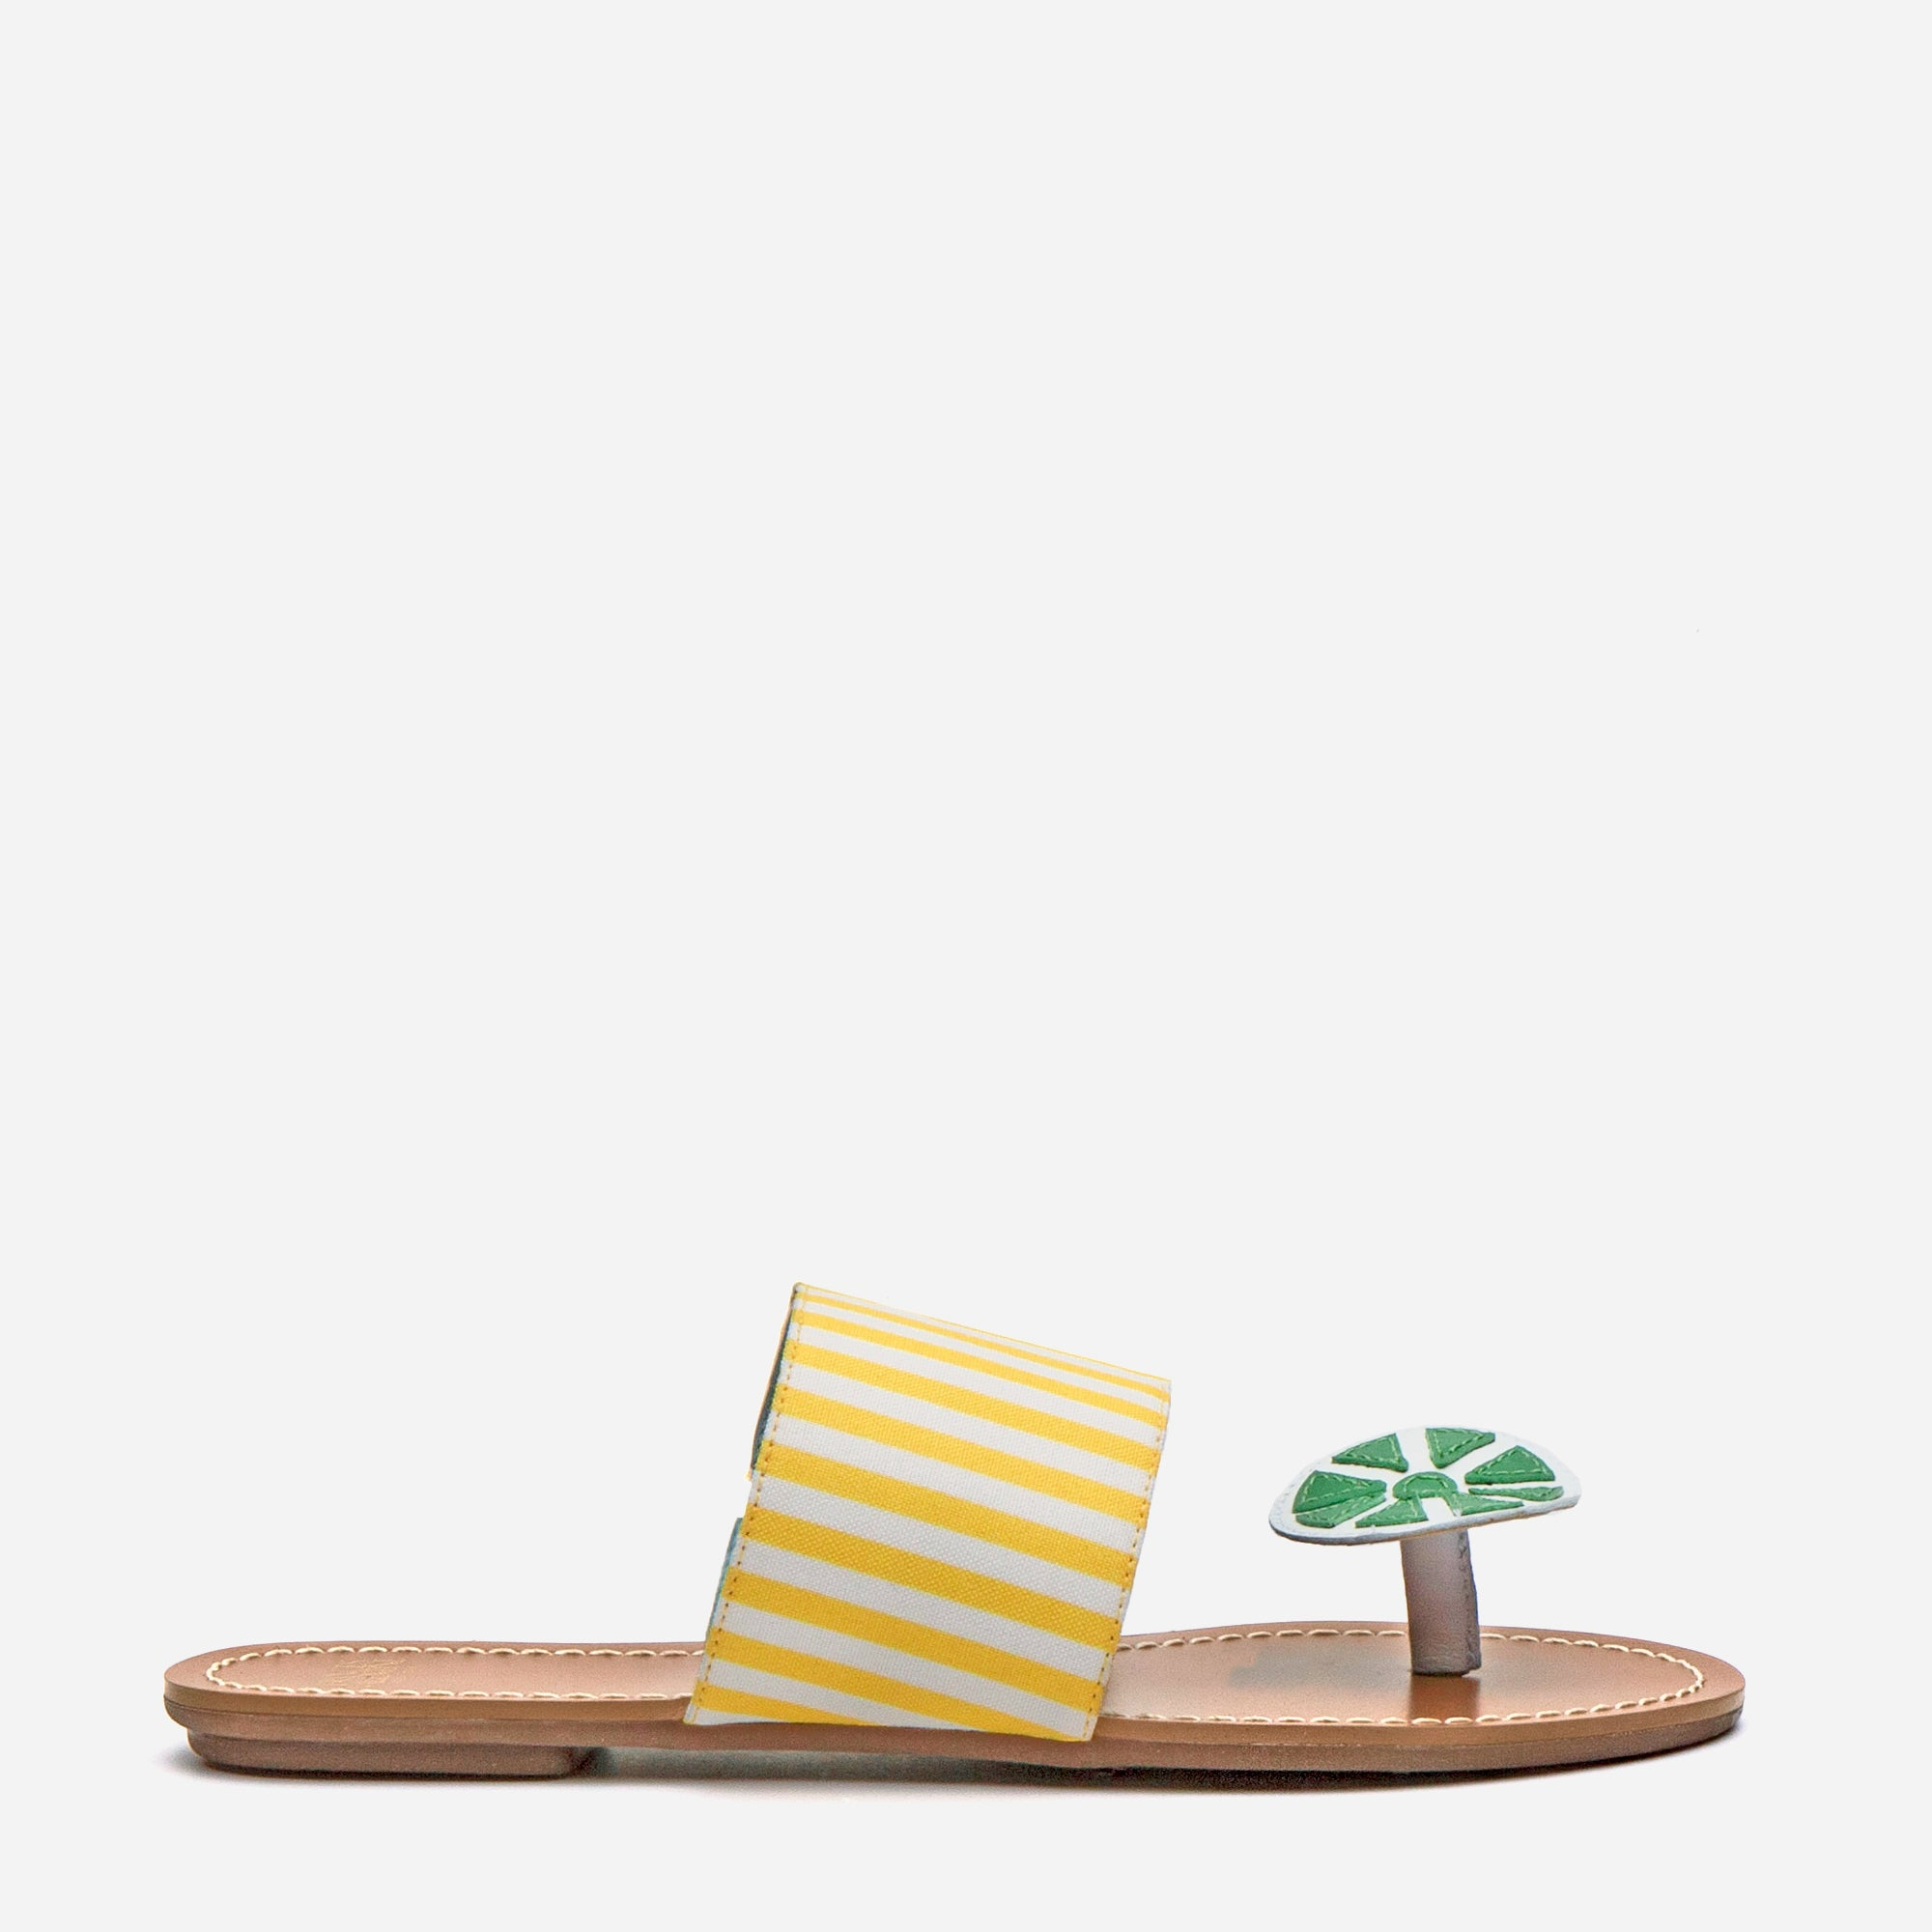 Clementine Citrus Sandal Yellow Grass